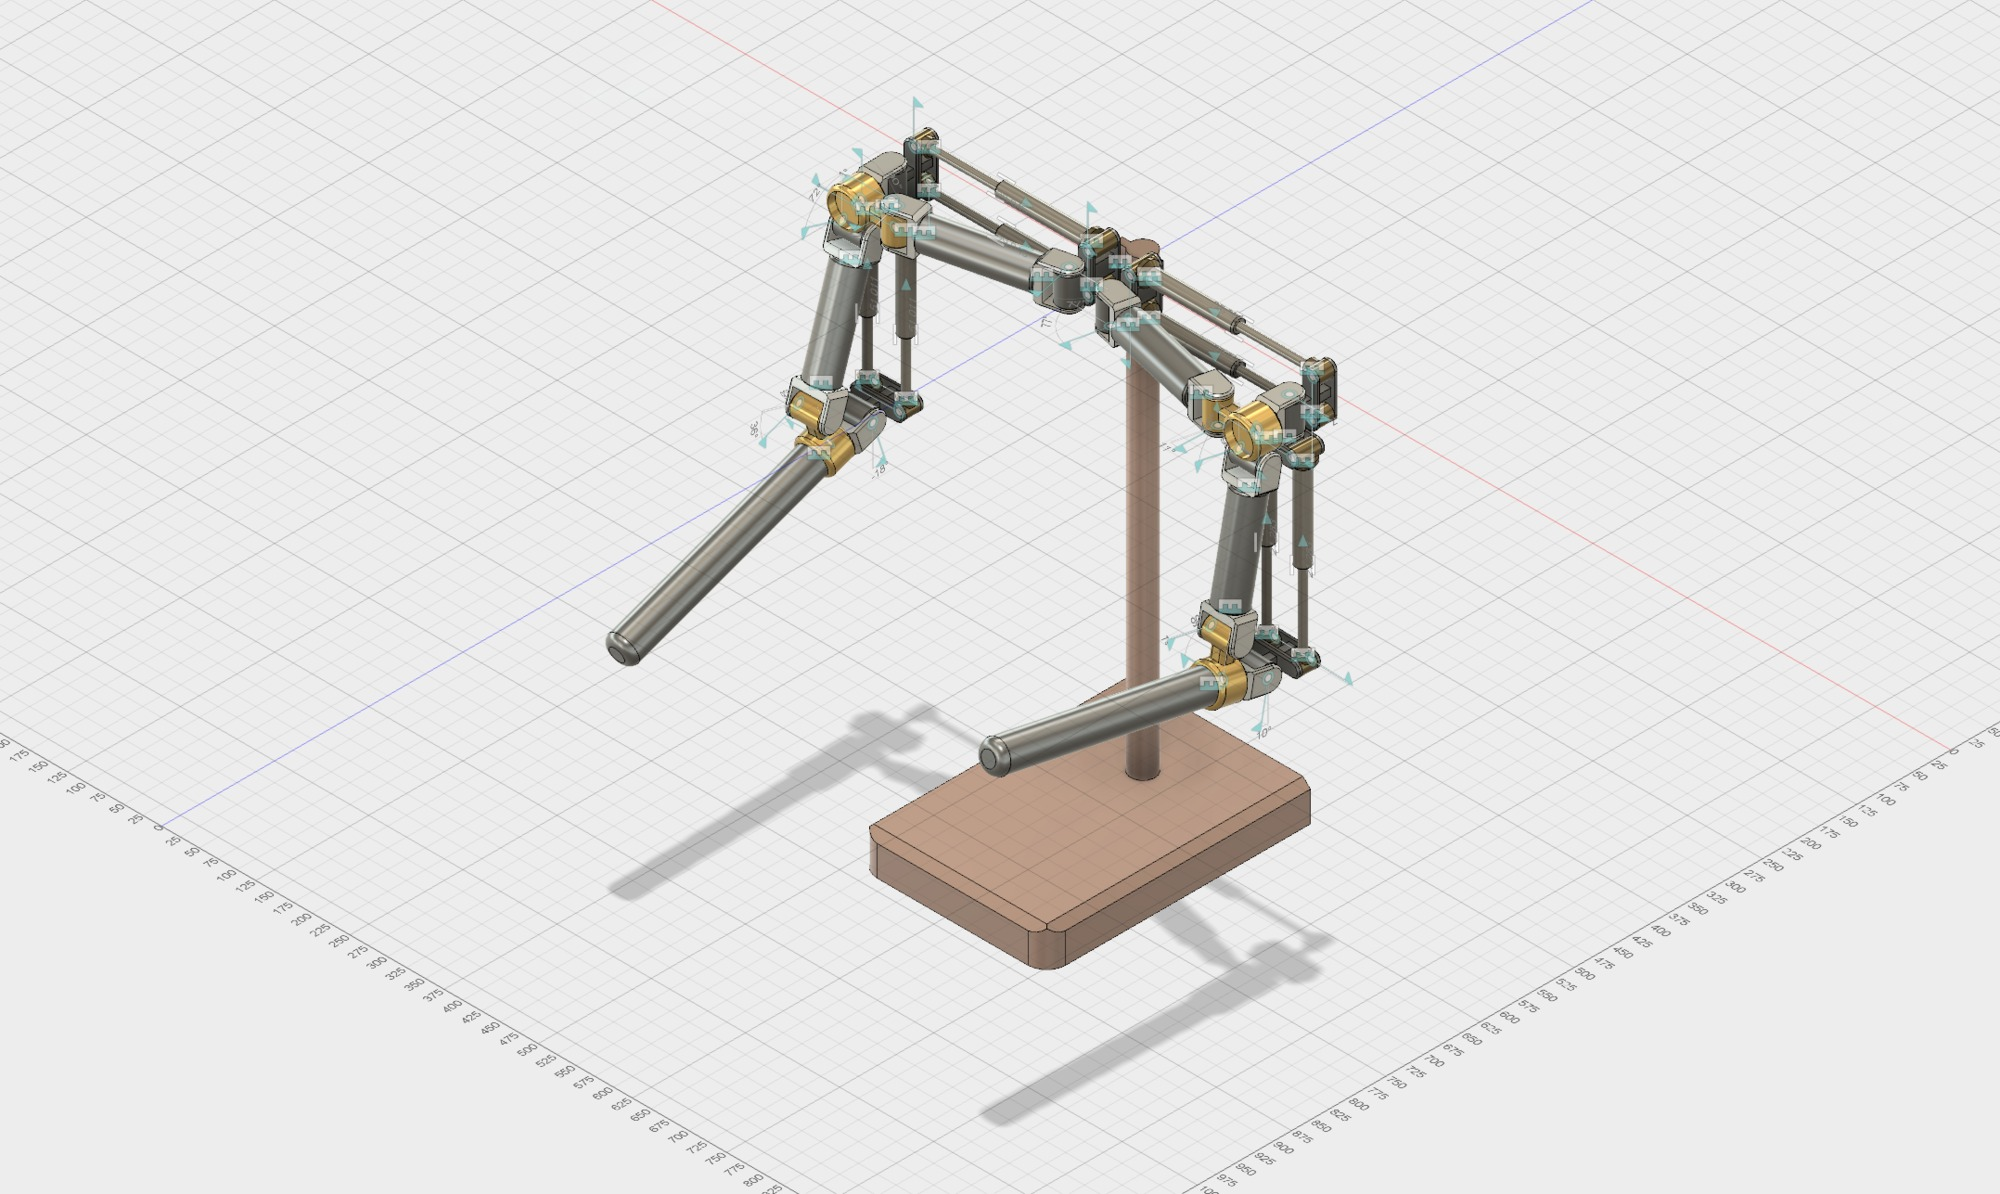 Humanoid Robot Arm with Linear Actuators|Autodesk Online Gallery